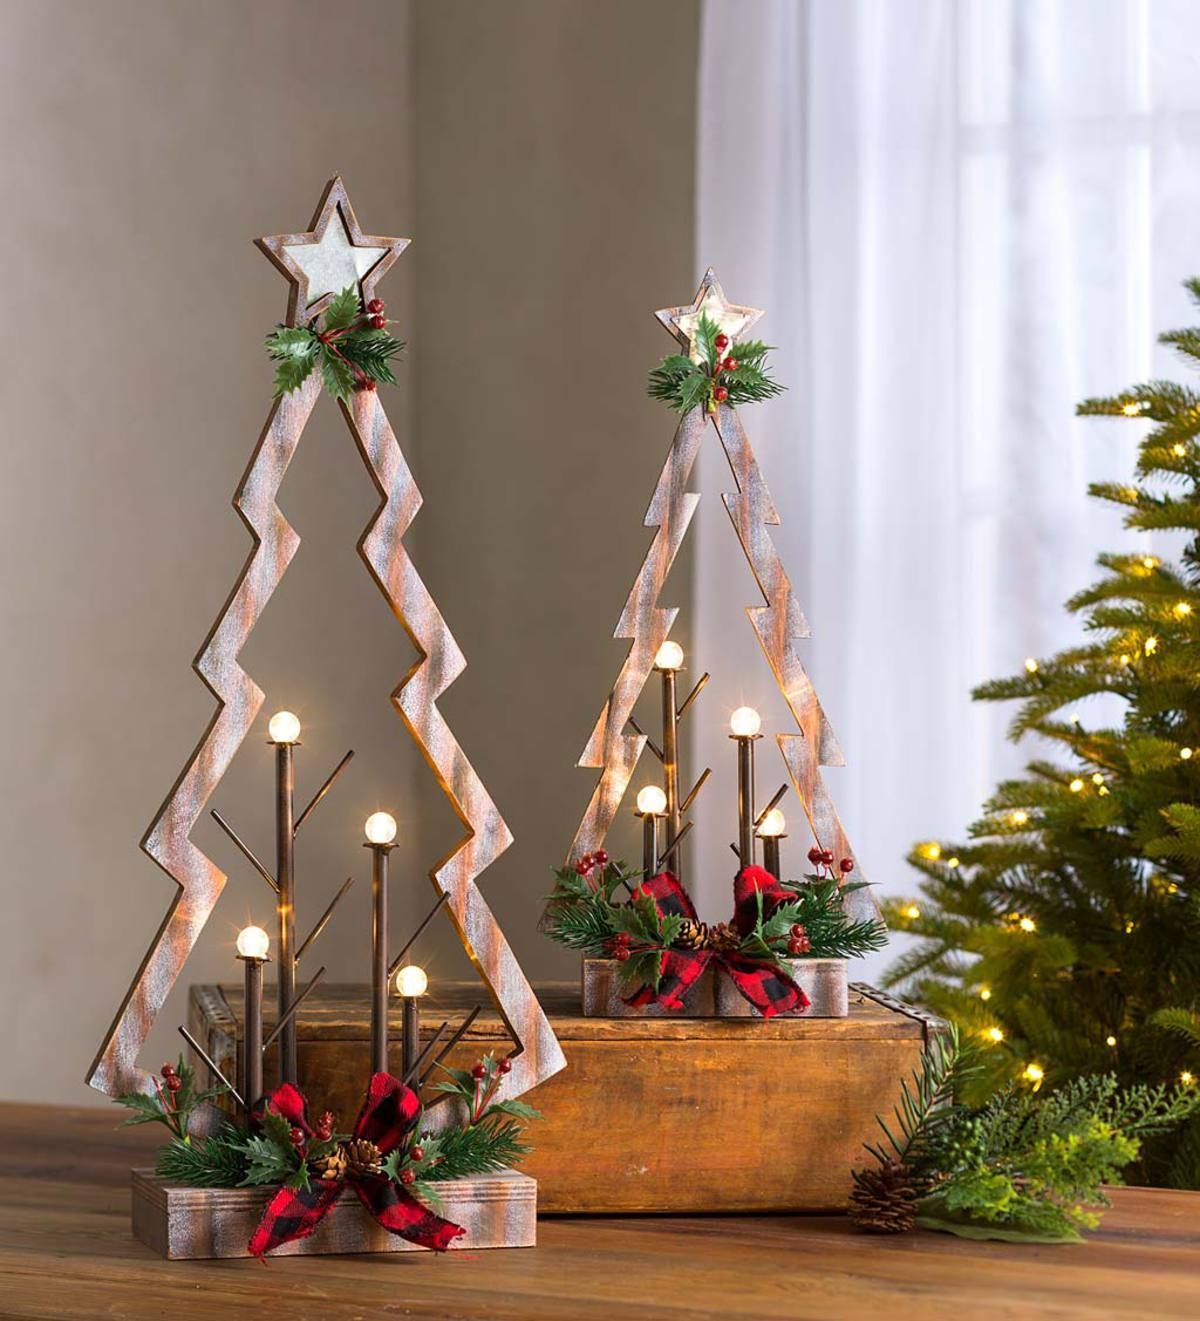 Our Set Of Two Tabletop Lighted Wooden Christmas Trees Is A New Take On A Traditional H Wooden Christmas Trees Wooden Christmas Tree Decorations Christmas Wood